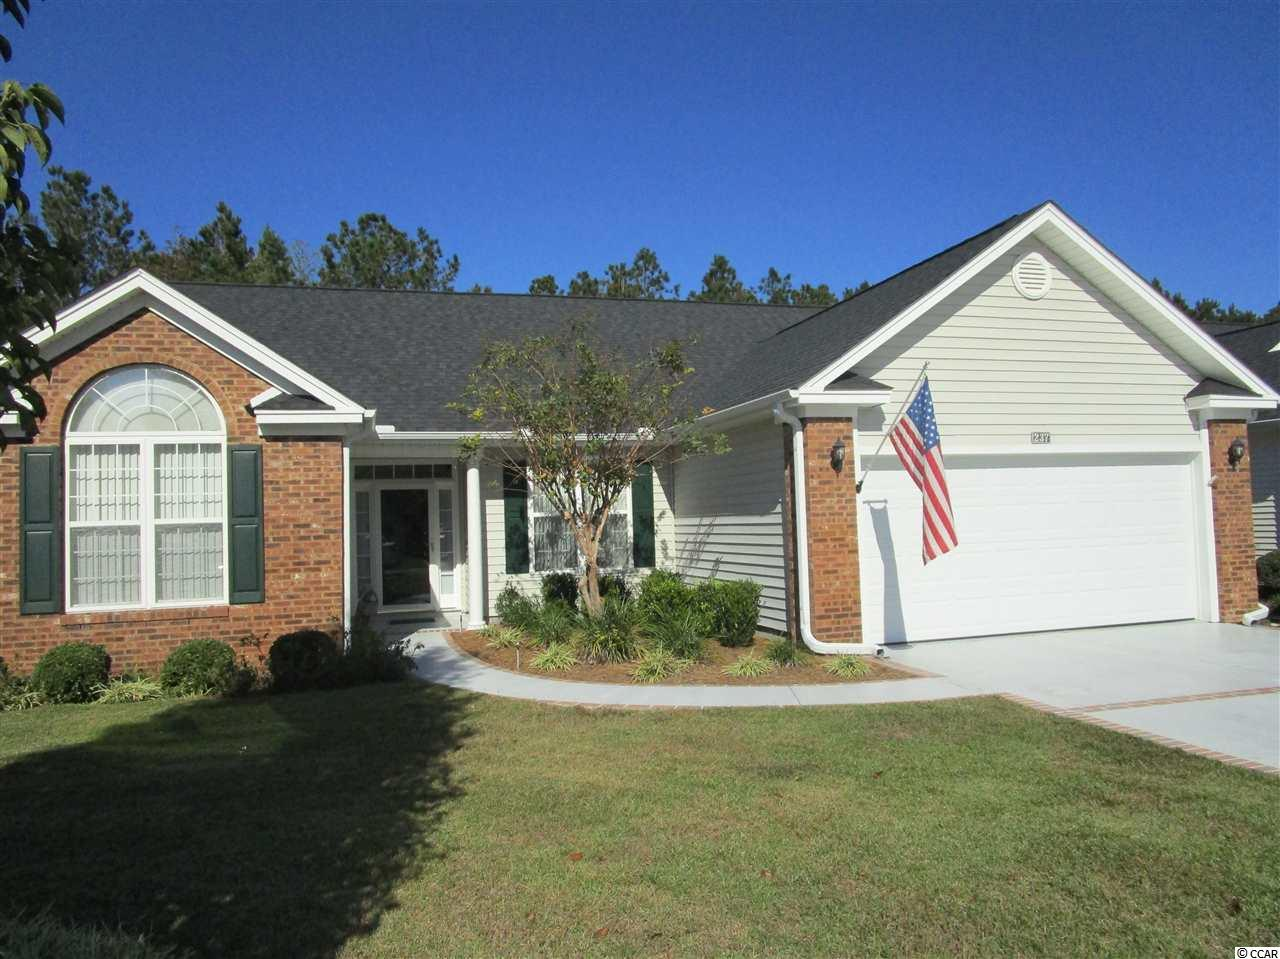 "Myrtle Trace 3BR/2BA home in 55+ Golf Course Community. Large open floor plan with Den. Soaring cathedral ceilings, Pergo wood floors & tile in ""traffic areas"", carpet in bedrooms. Quiet private backyard. This home has many upgrades, all appliances including washer/dryer & window treatments convey with home. New roof 2018. This home is in very good condition inside and out."